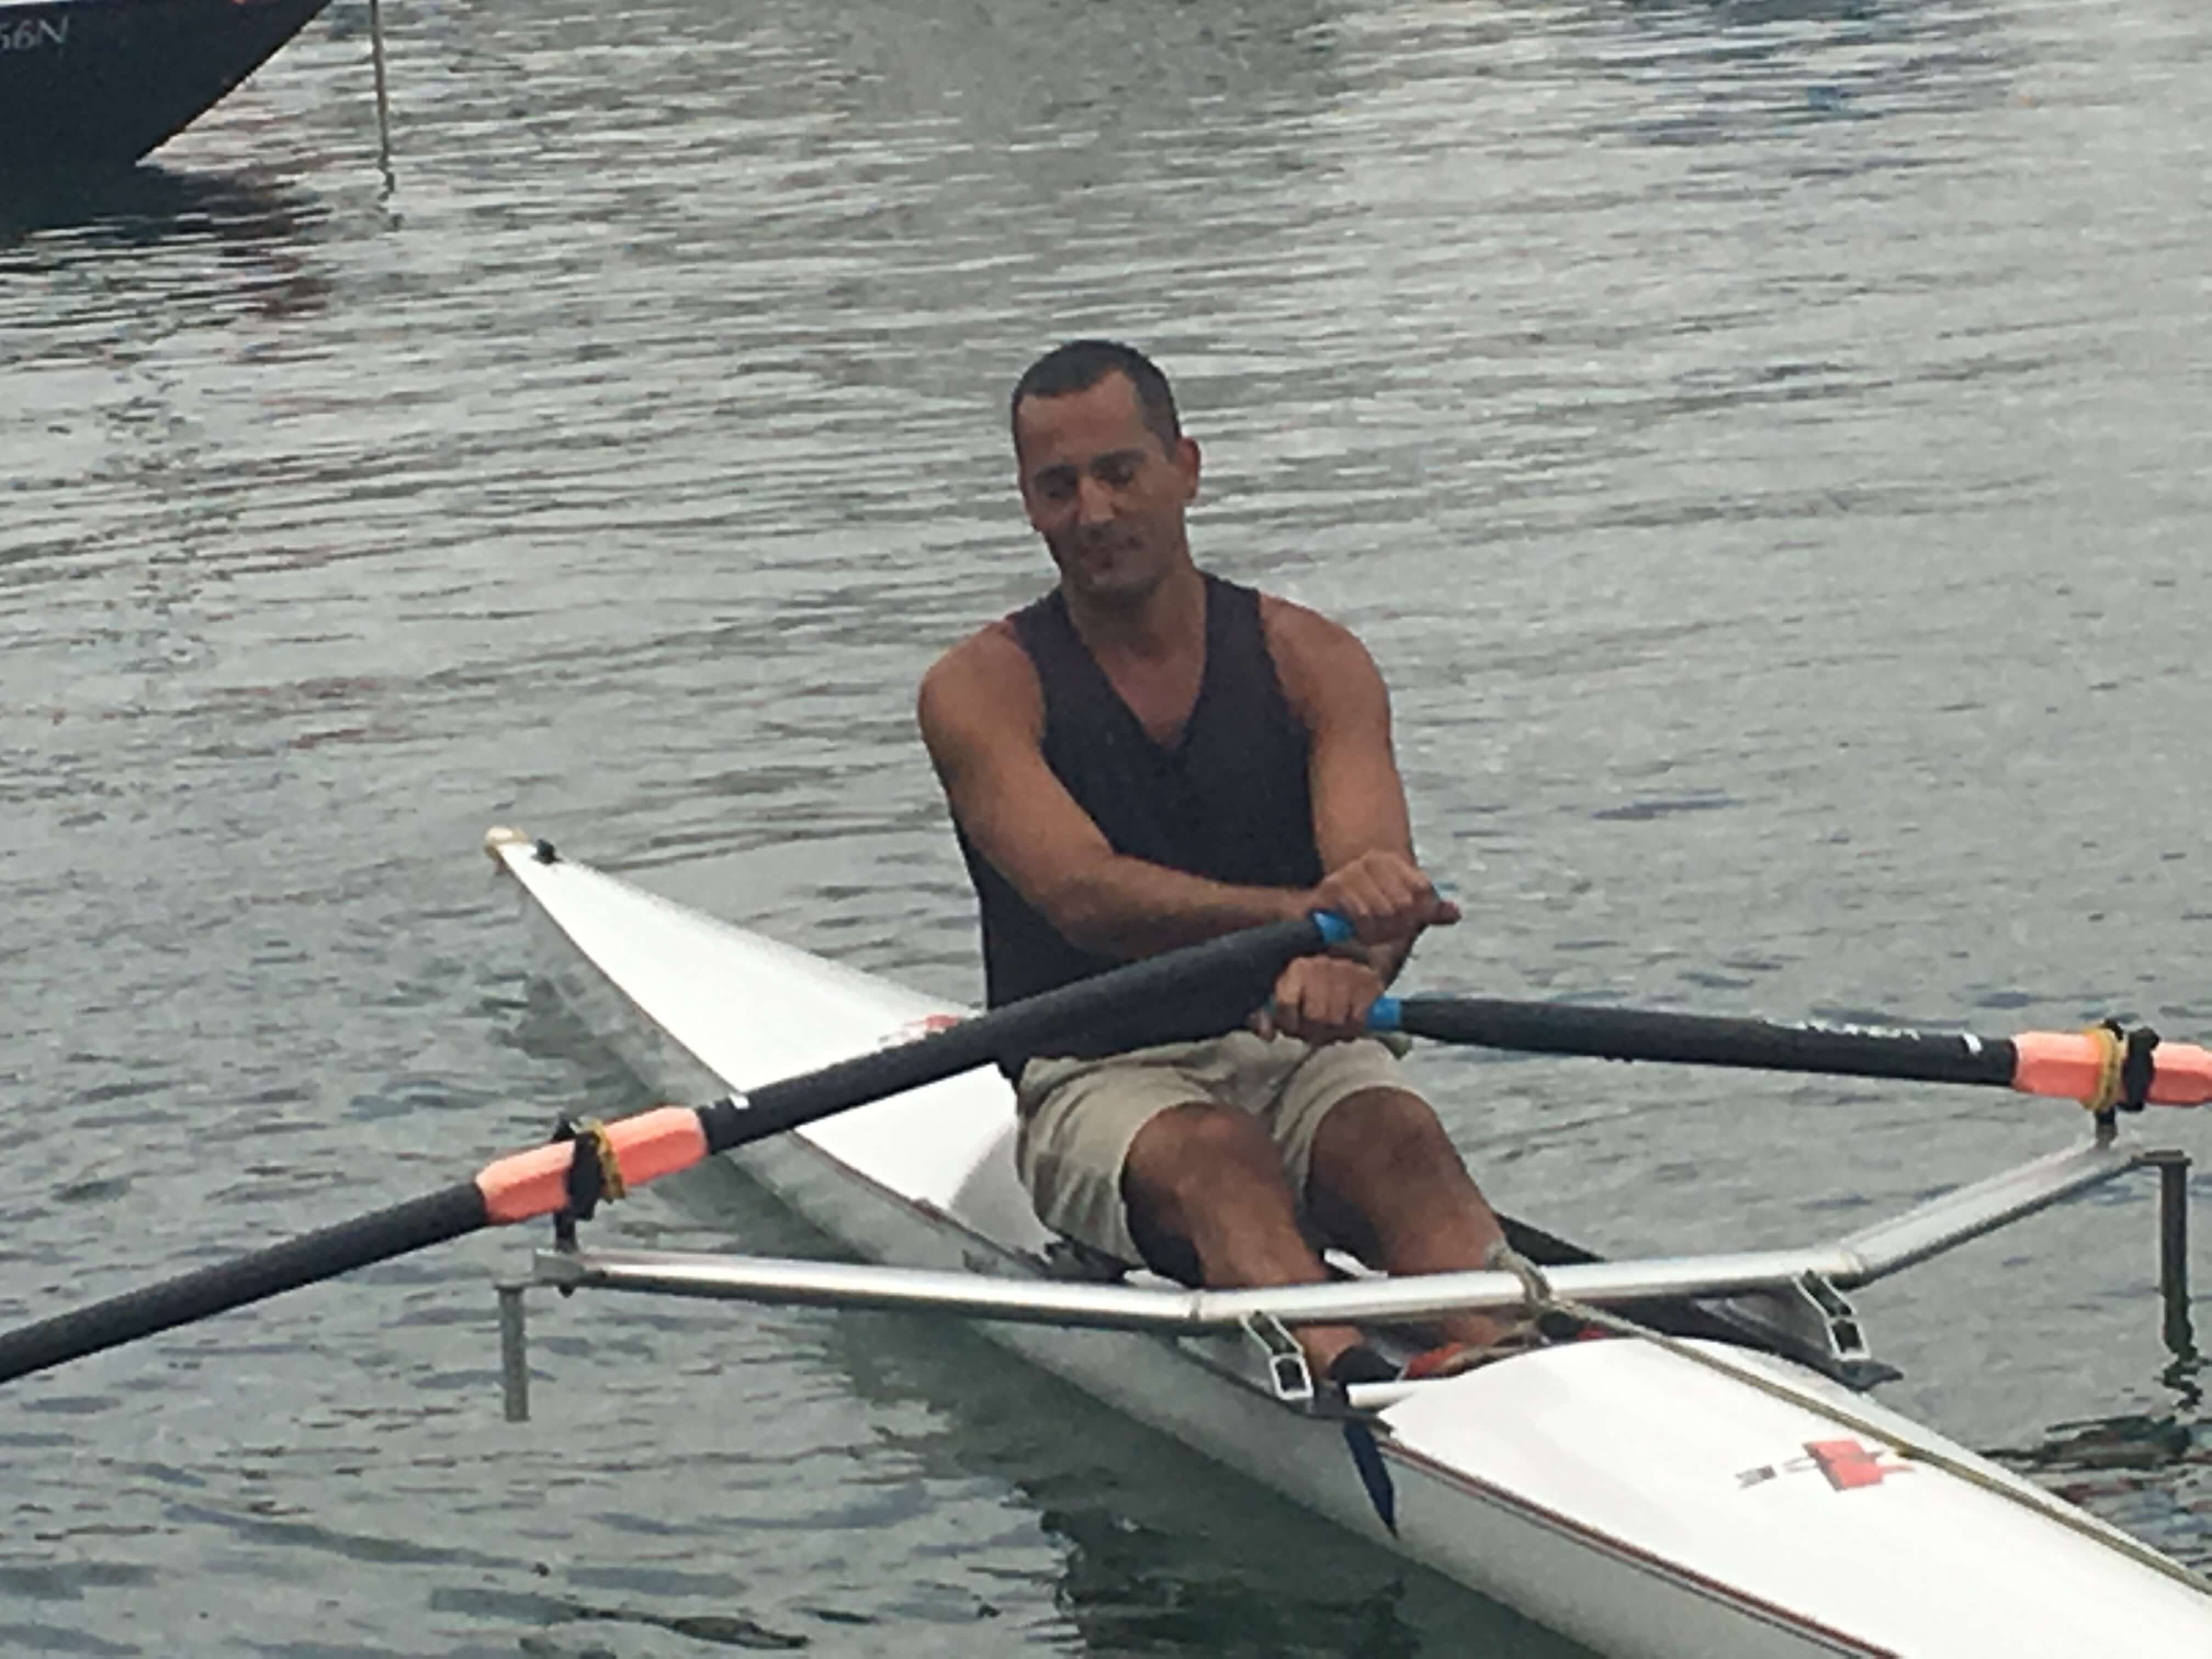 Sam Shalhoub – Rower On The Rise